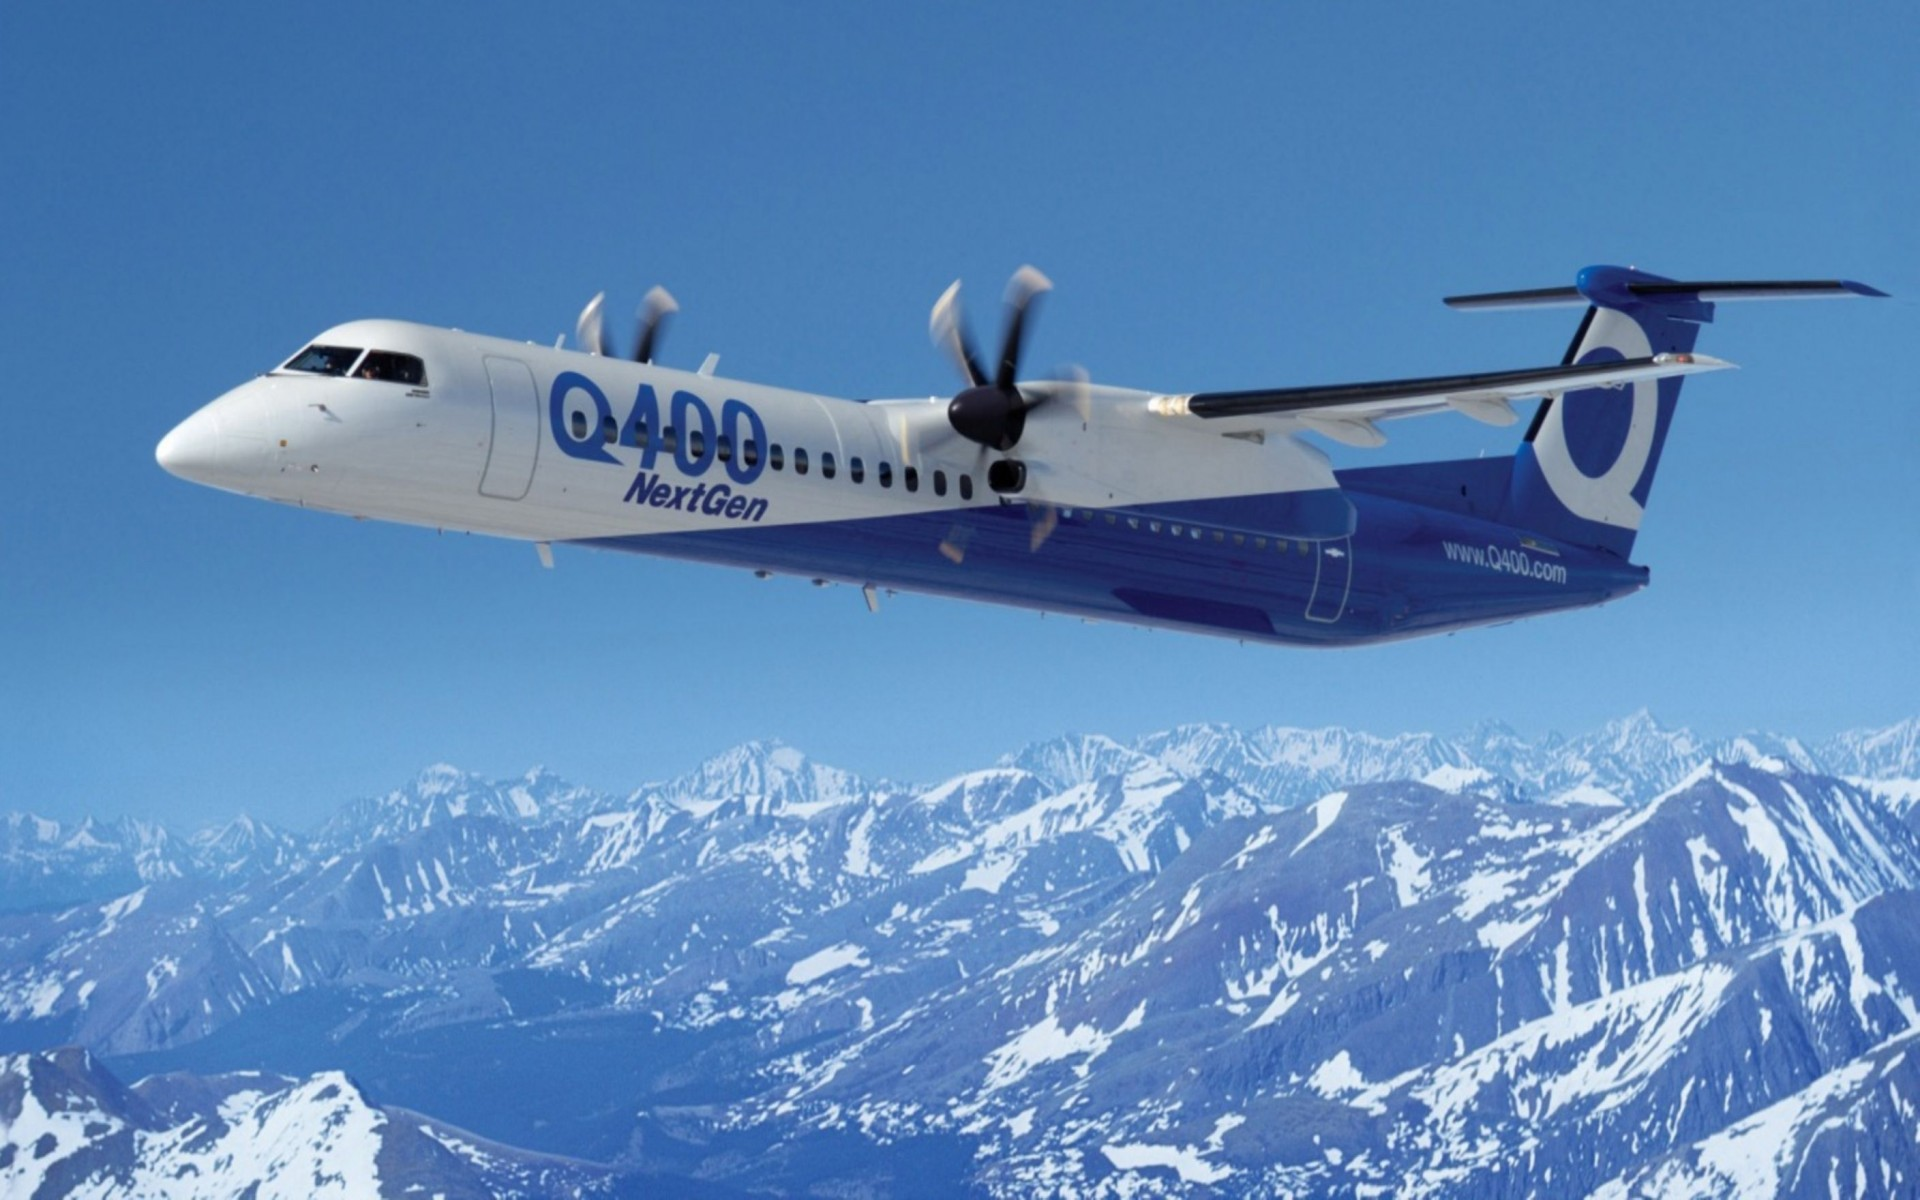 Bombardier Q400 Next Gen Wallpaper